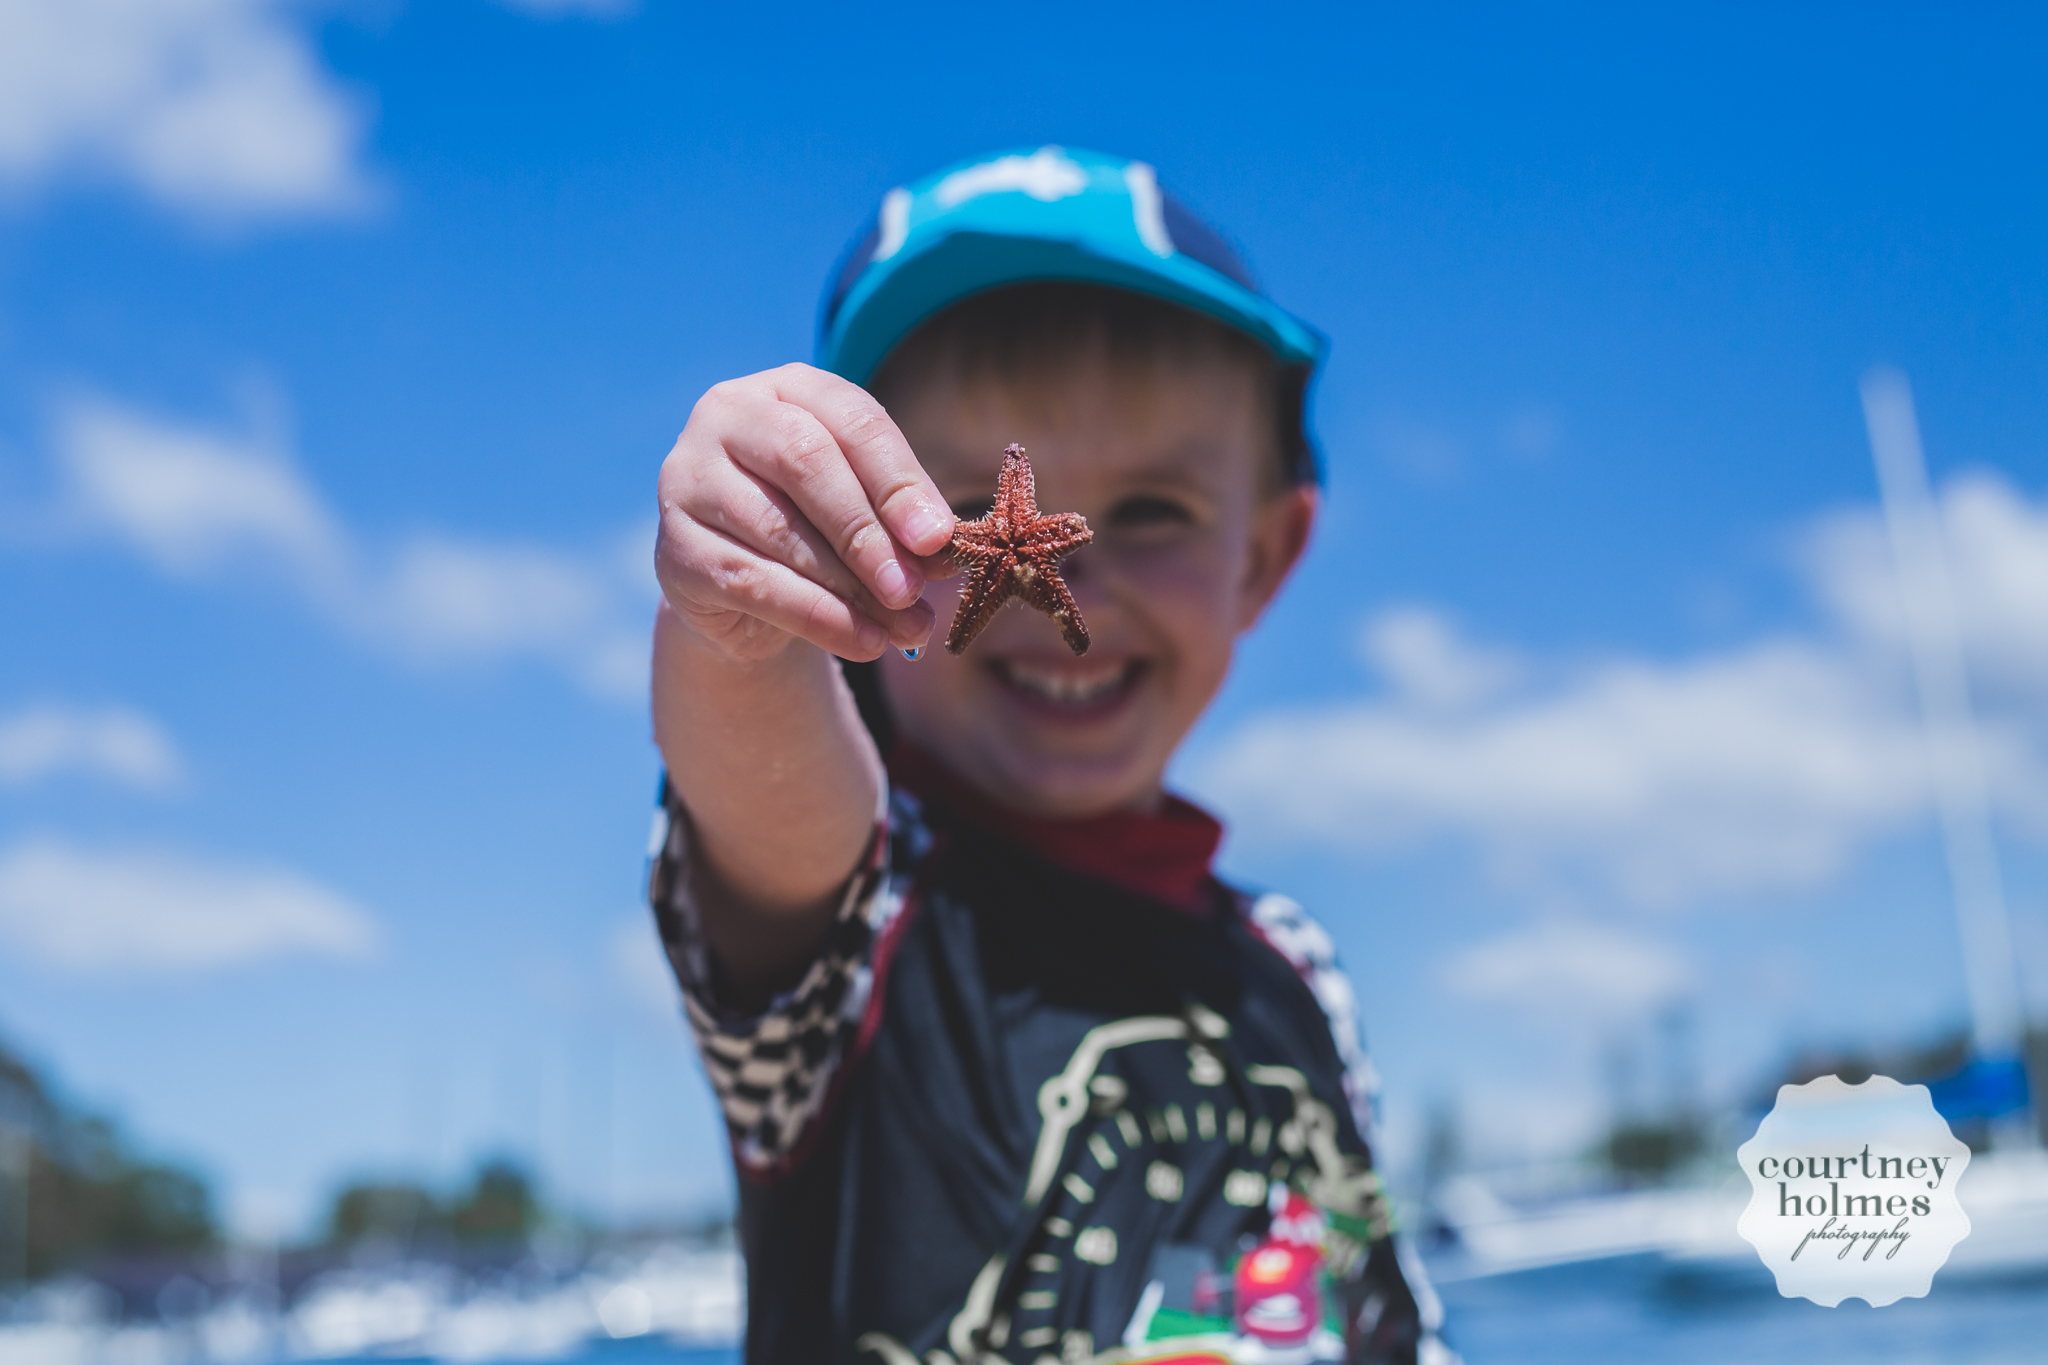 he found a starfish!